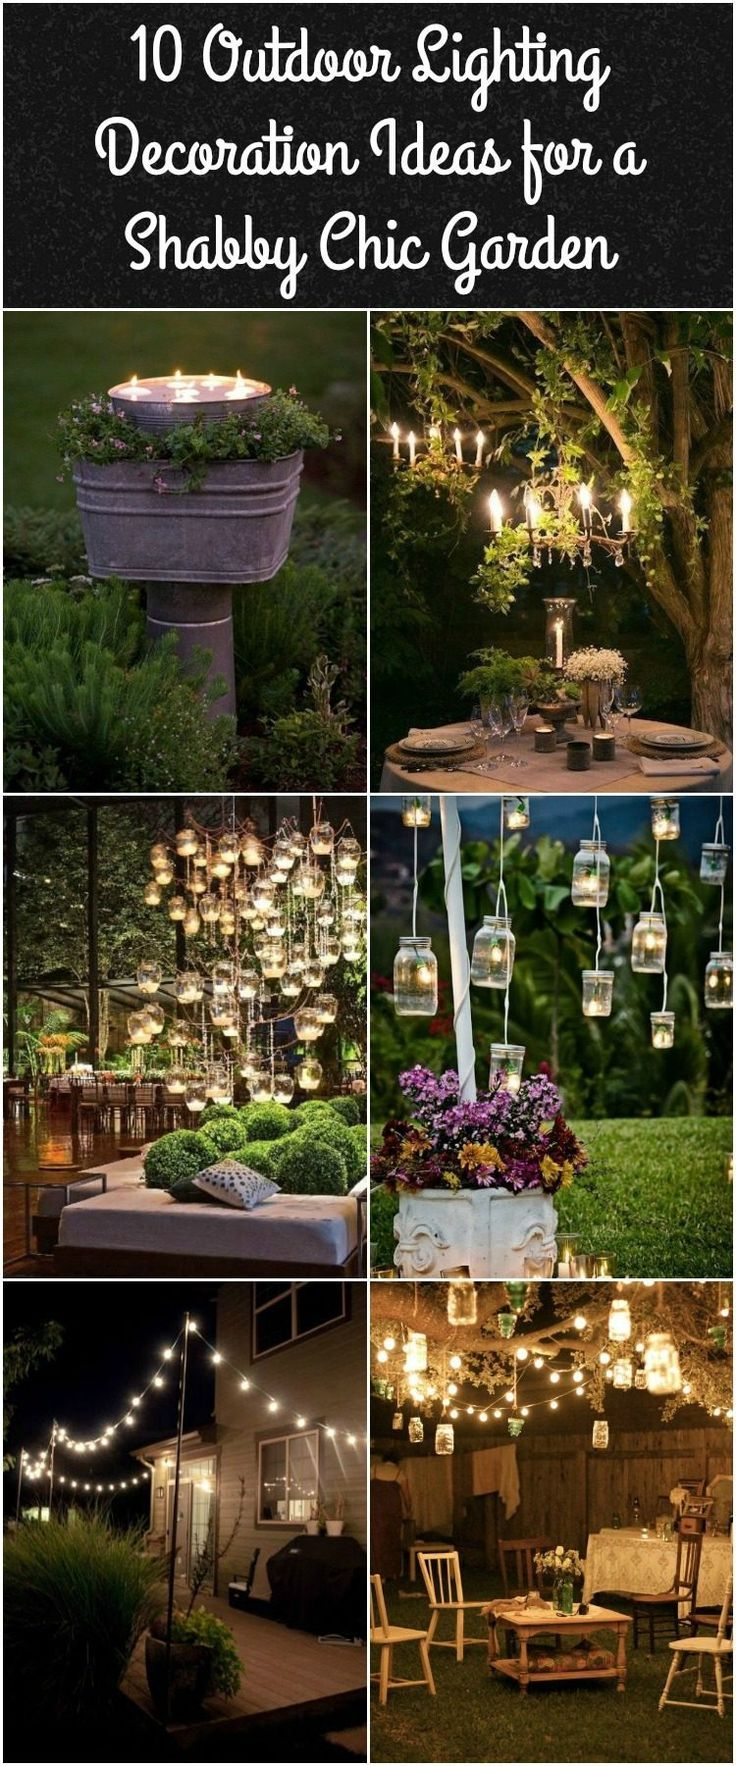 10 Outdoor Lighting Decoration Ideas For A Shabby Chic Garden. #6 Is Lovely  Outdoor